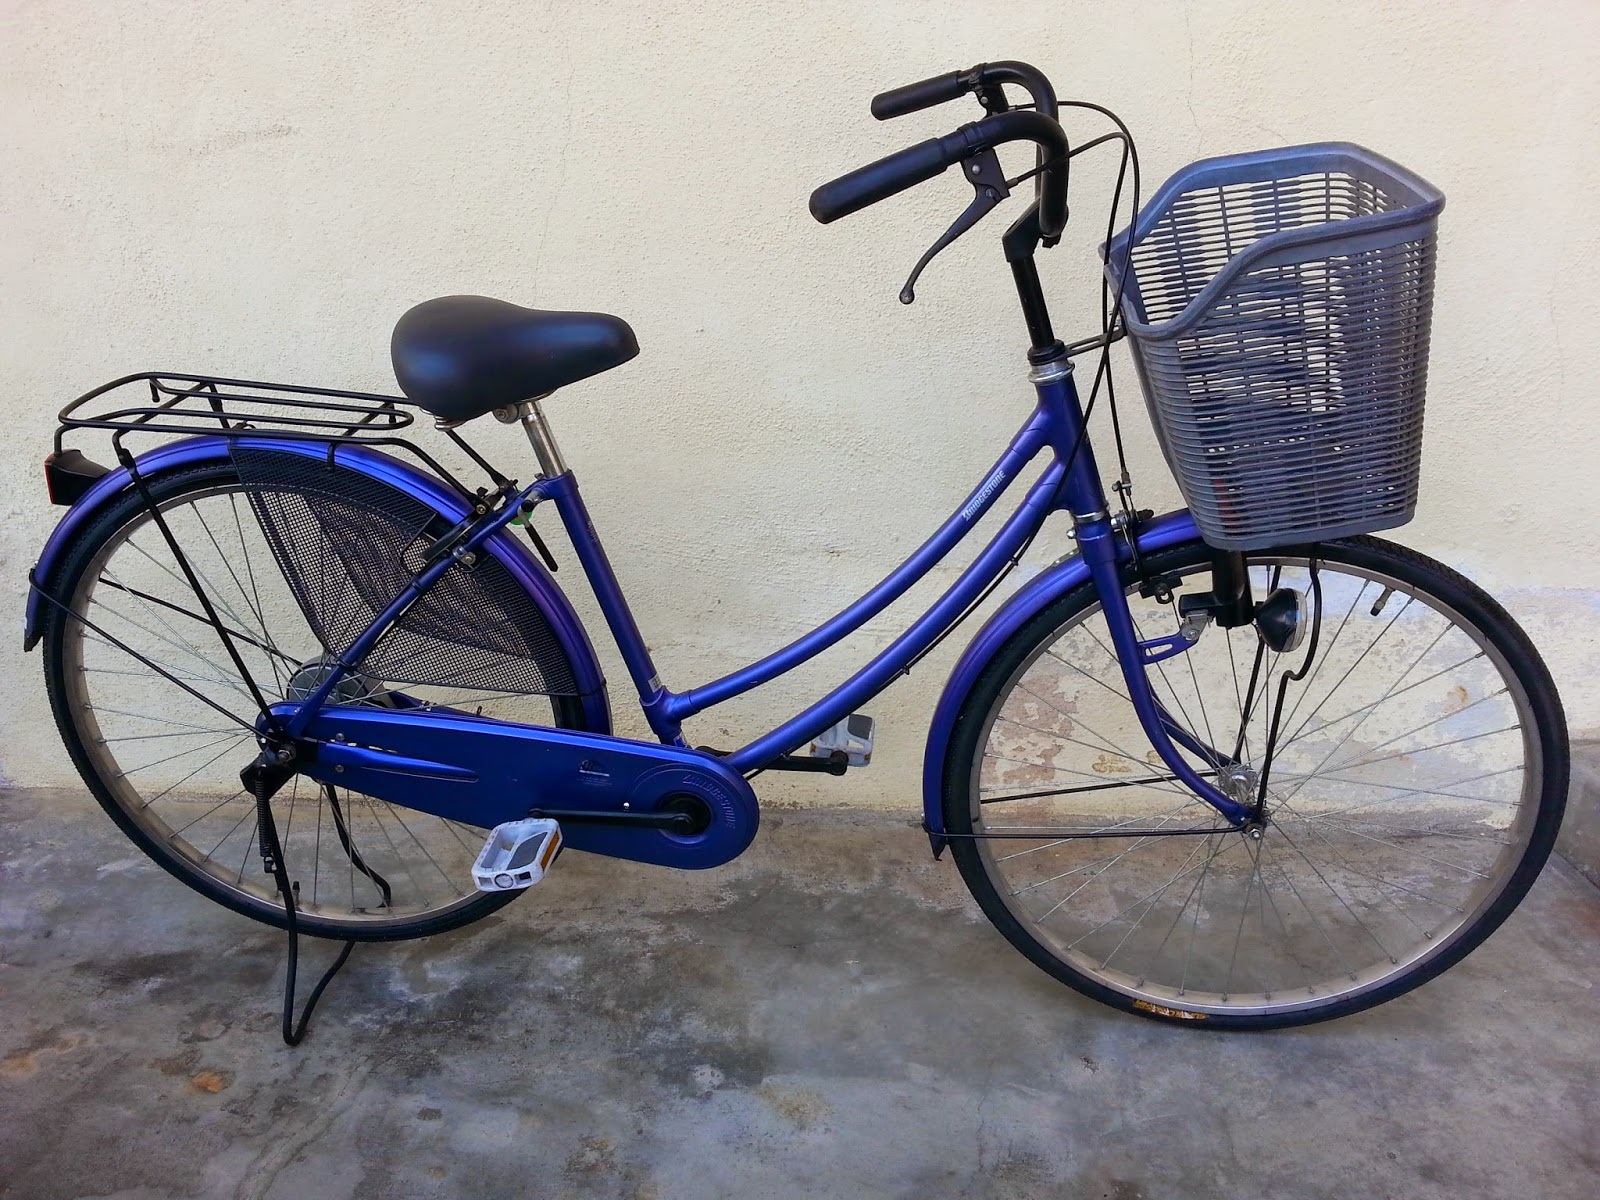 The Right Bike Store 26 Imported Used Classic City Bicycle From